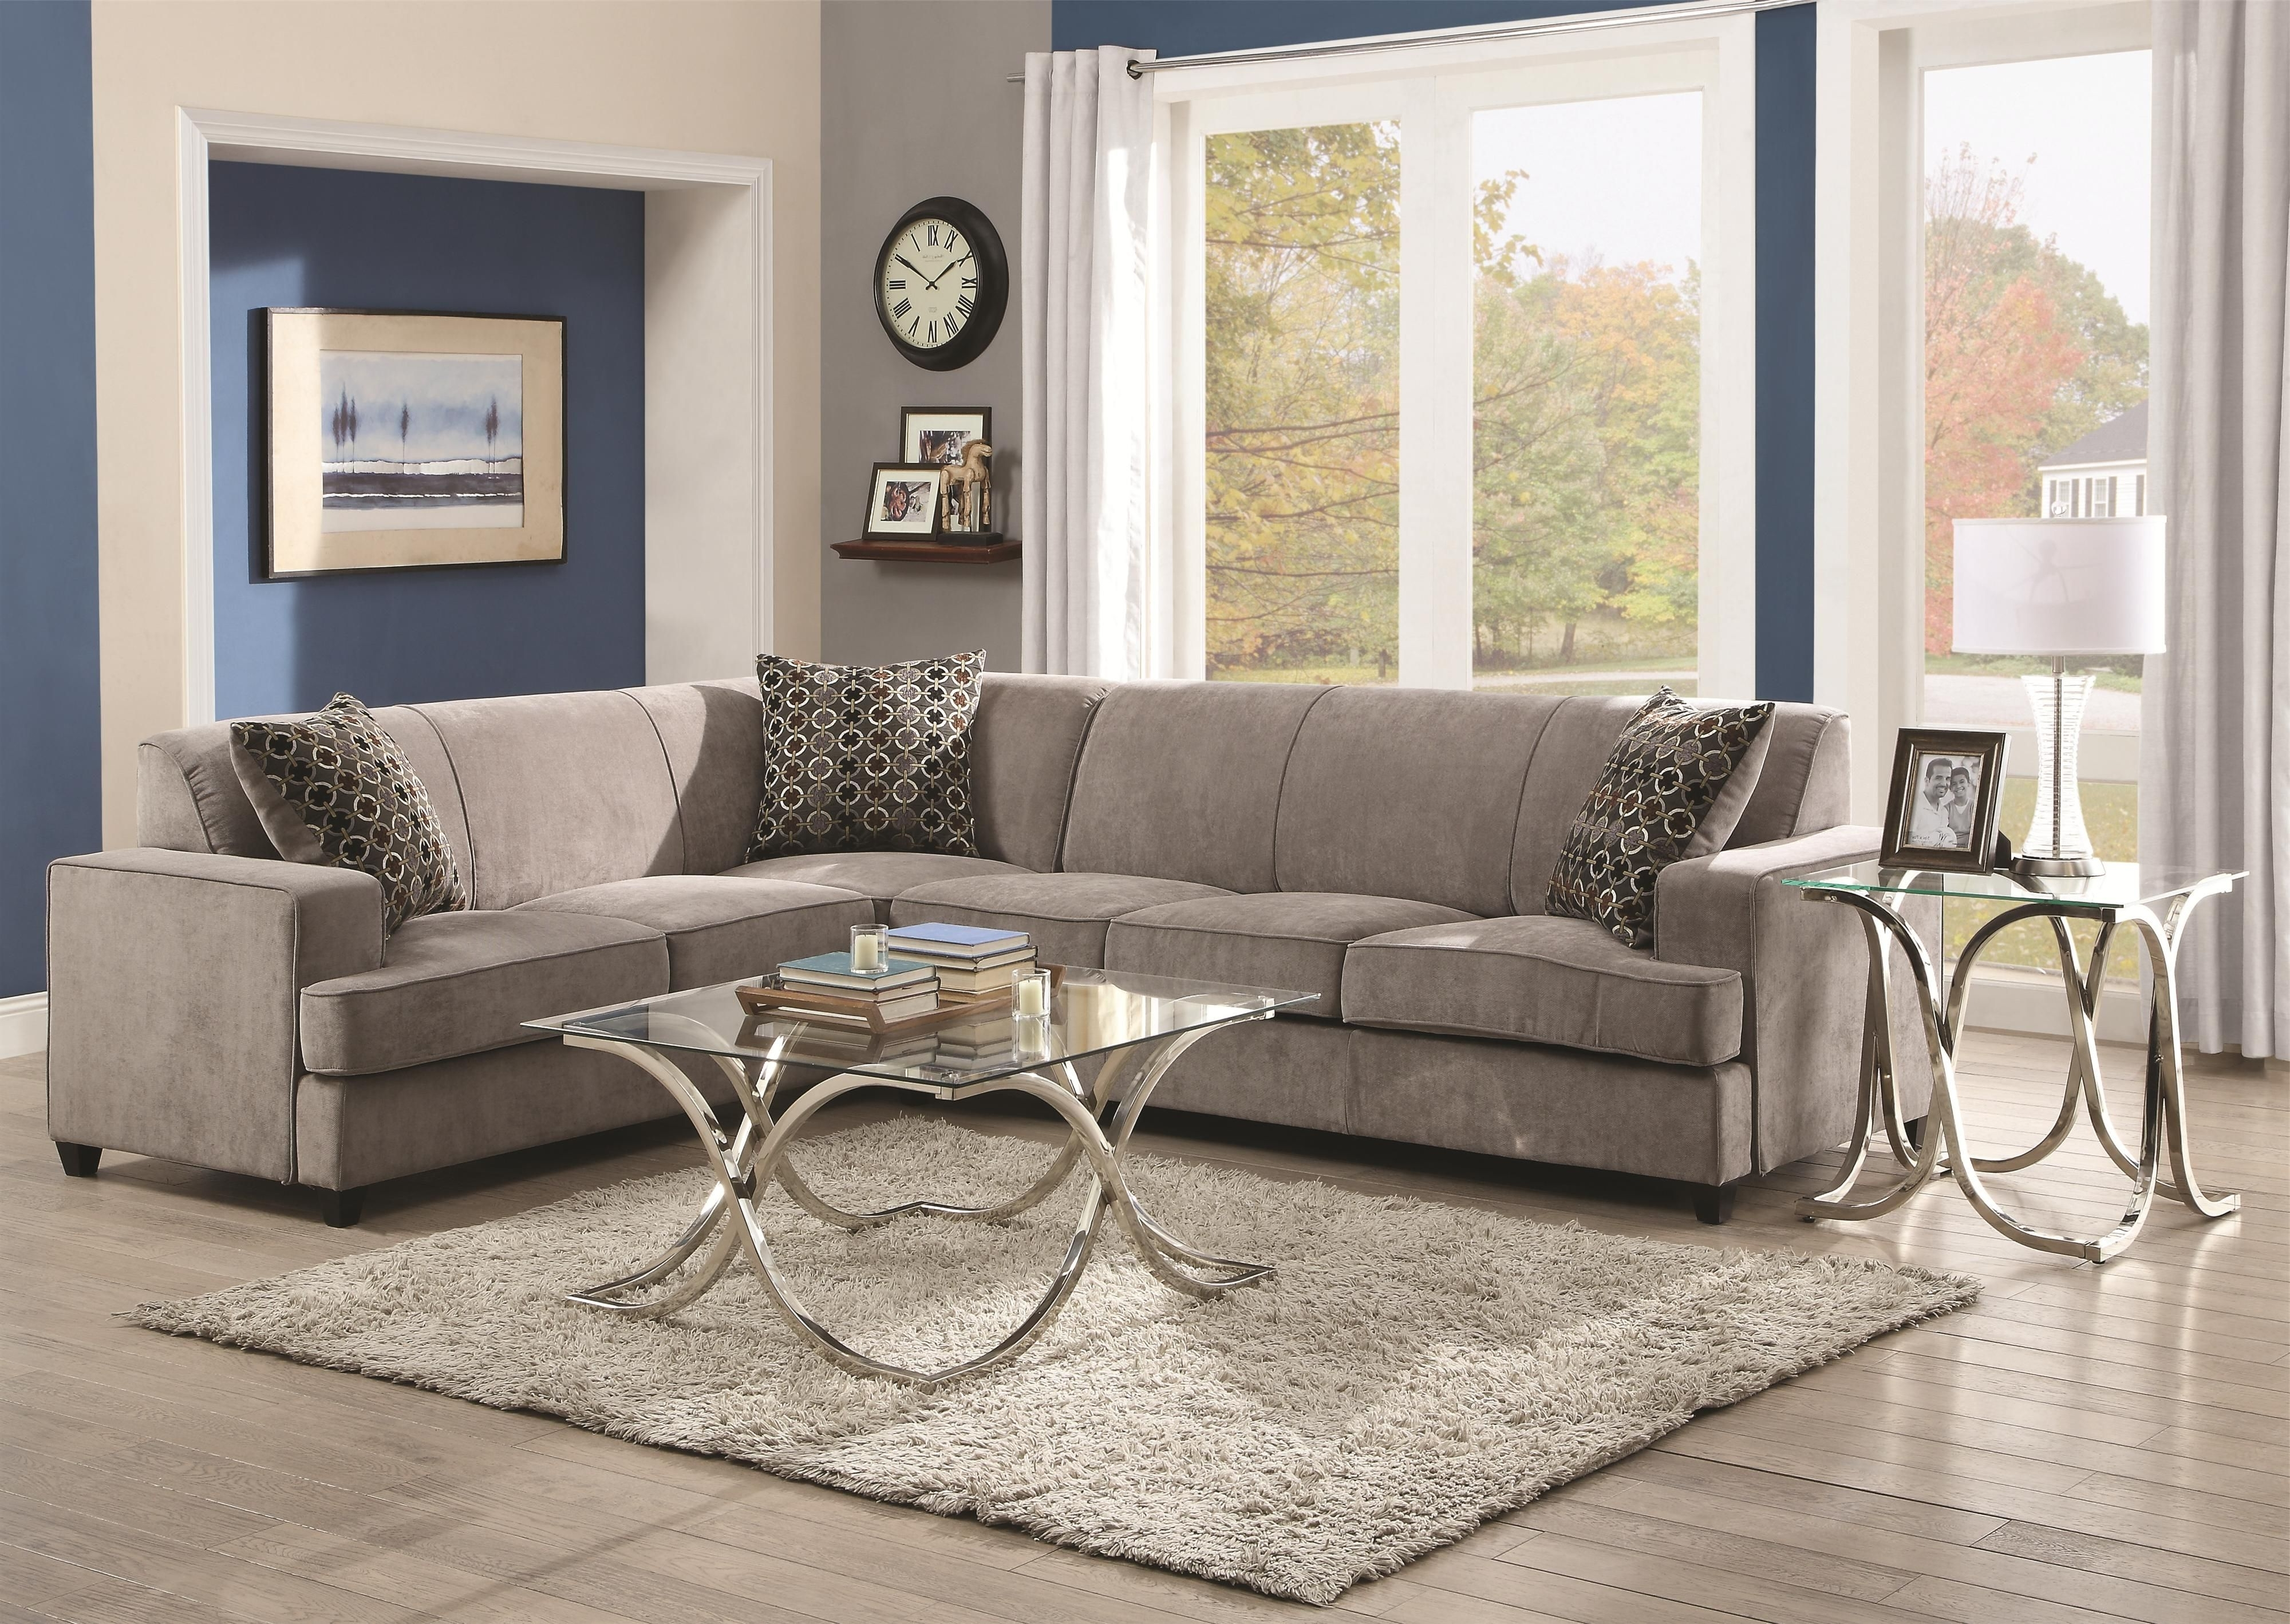 Widely Used Tess Sectional Sofa For Cornerscoaster (View 18 of 20)